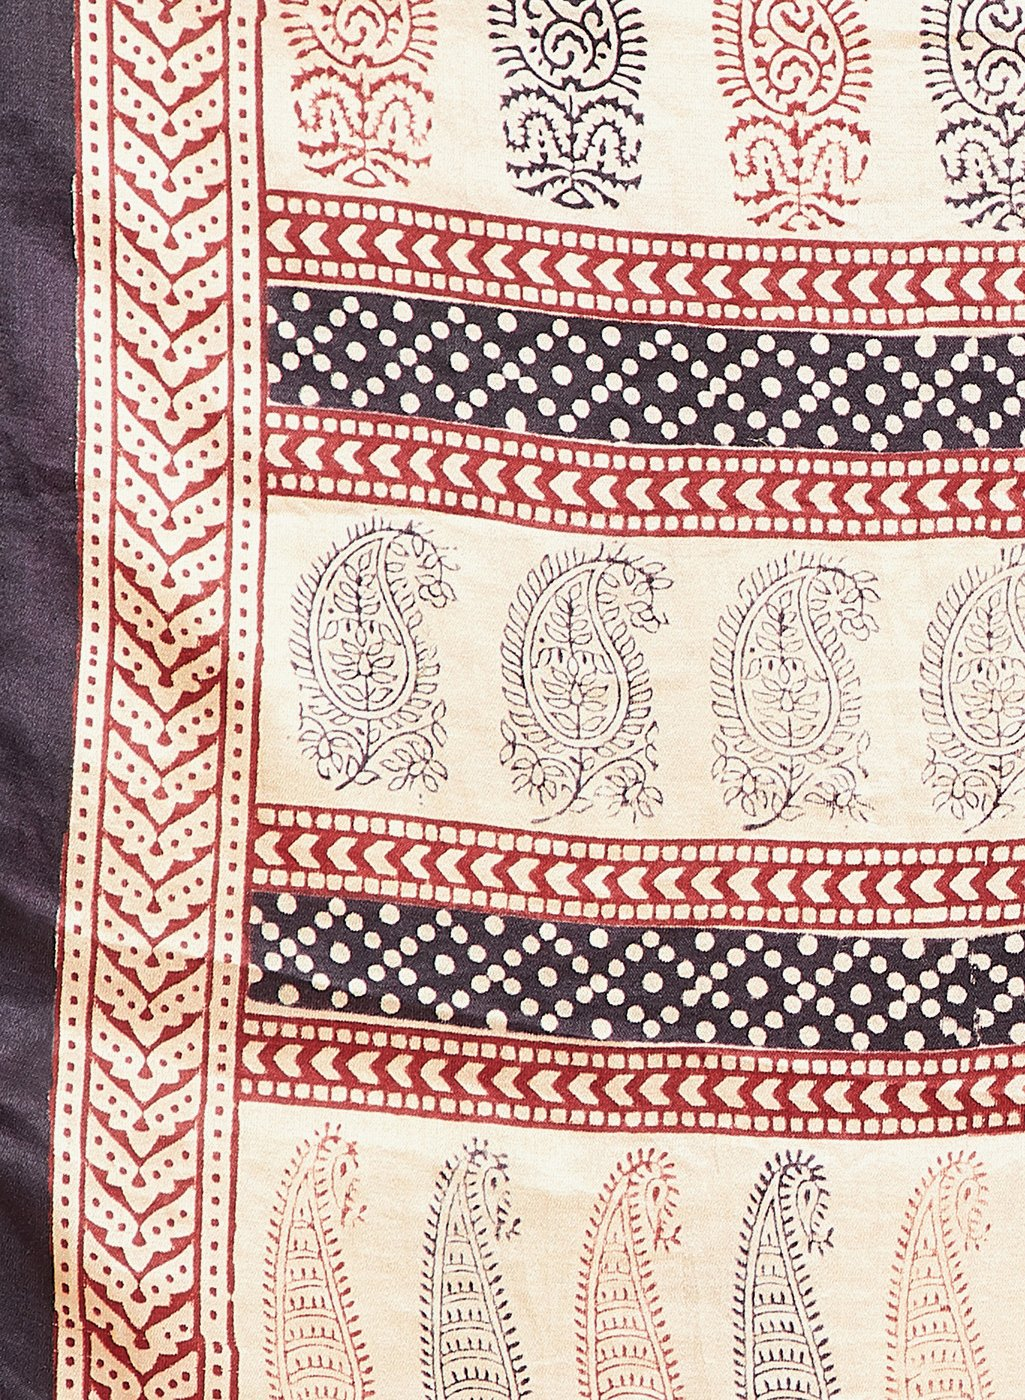 Exotic Gaji Silk Bagh Handblock Printed Scarf-Scarf-Kalakari India-MRBAST006-Bagh, Cruelty Free, Geographical Indication, Hand Blocks, Hand Crafted, Heritage Prints, Modal Silk, Natural Dyes, Scarf, Silk, Sustainable Fabrics, Vegan Silk-[Linen,Ethnic,wear,Fashionista,Handloom,Handicraft,Indigo,blockprint,block,print,Cotton,Chanderi,Blue, latest,classy,party,bollywood,trendy,summer,style,traditional,formal,elegant,unique,style,hand,block,print, dabu,booti,gift,present,glamorous,affordable,collect